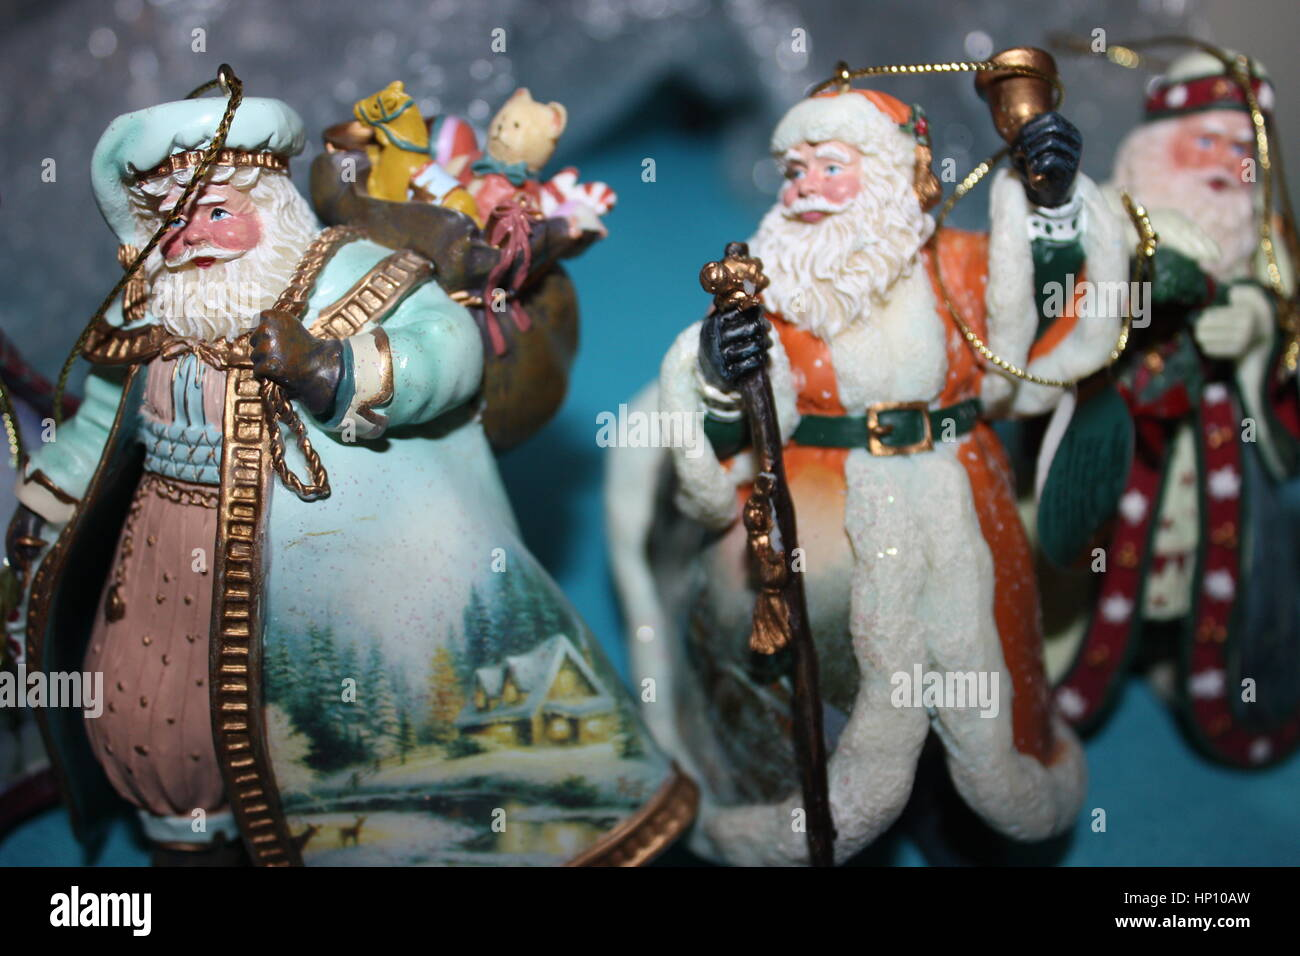 This Is A Close Up Picture Of 3 Thomas Kinkade Christmas Ornaments